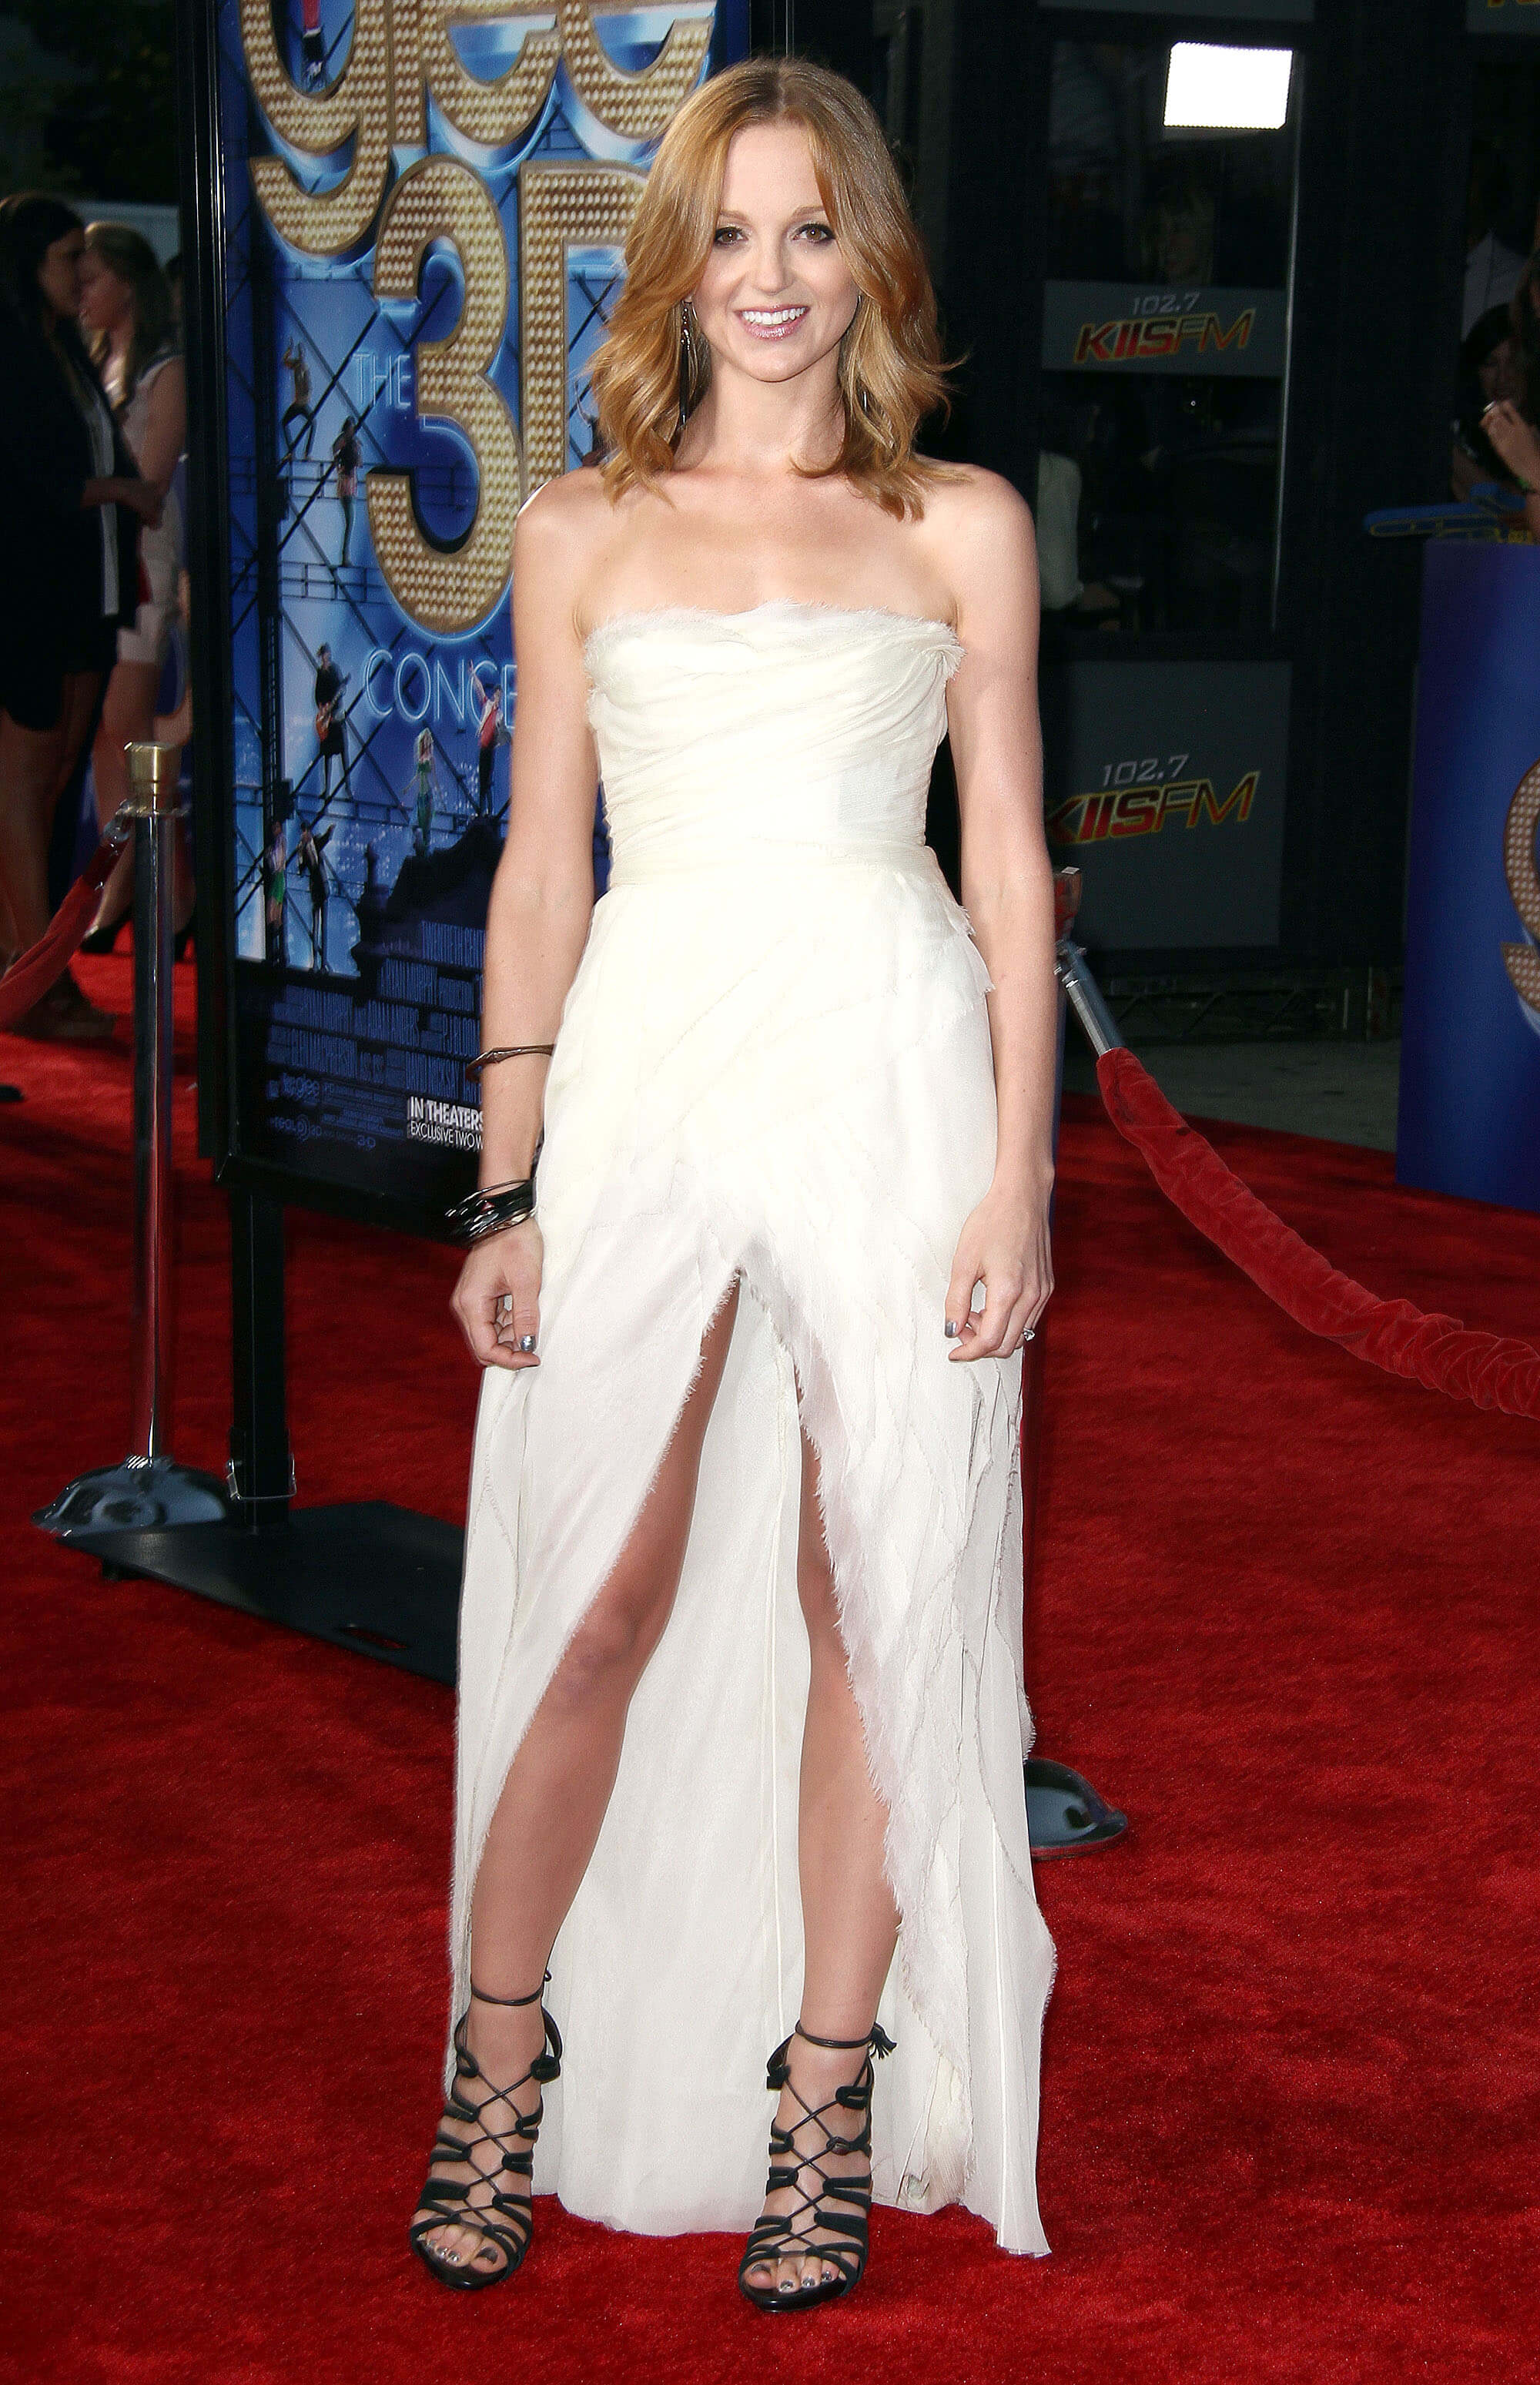 49 Hot Pictures OfJayma Mays Are Going To Cheer You Up